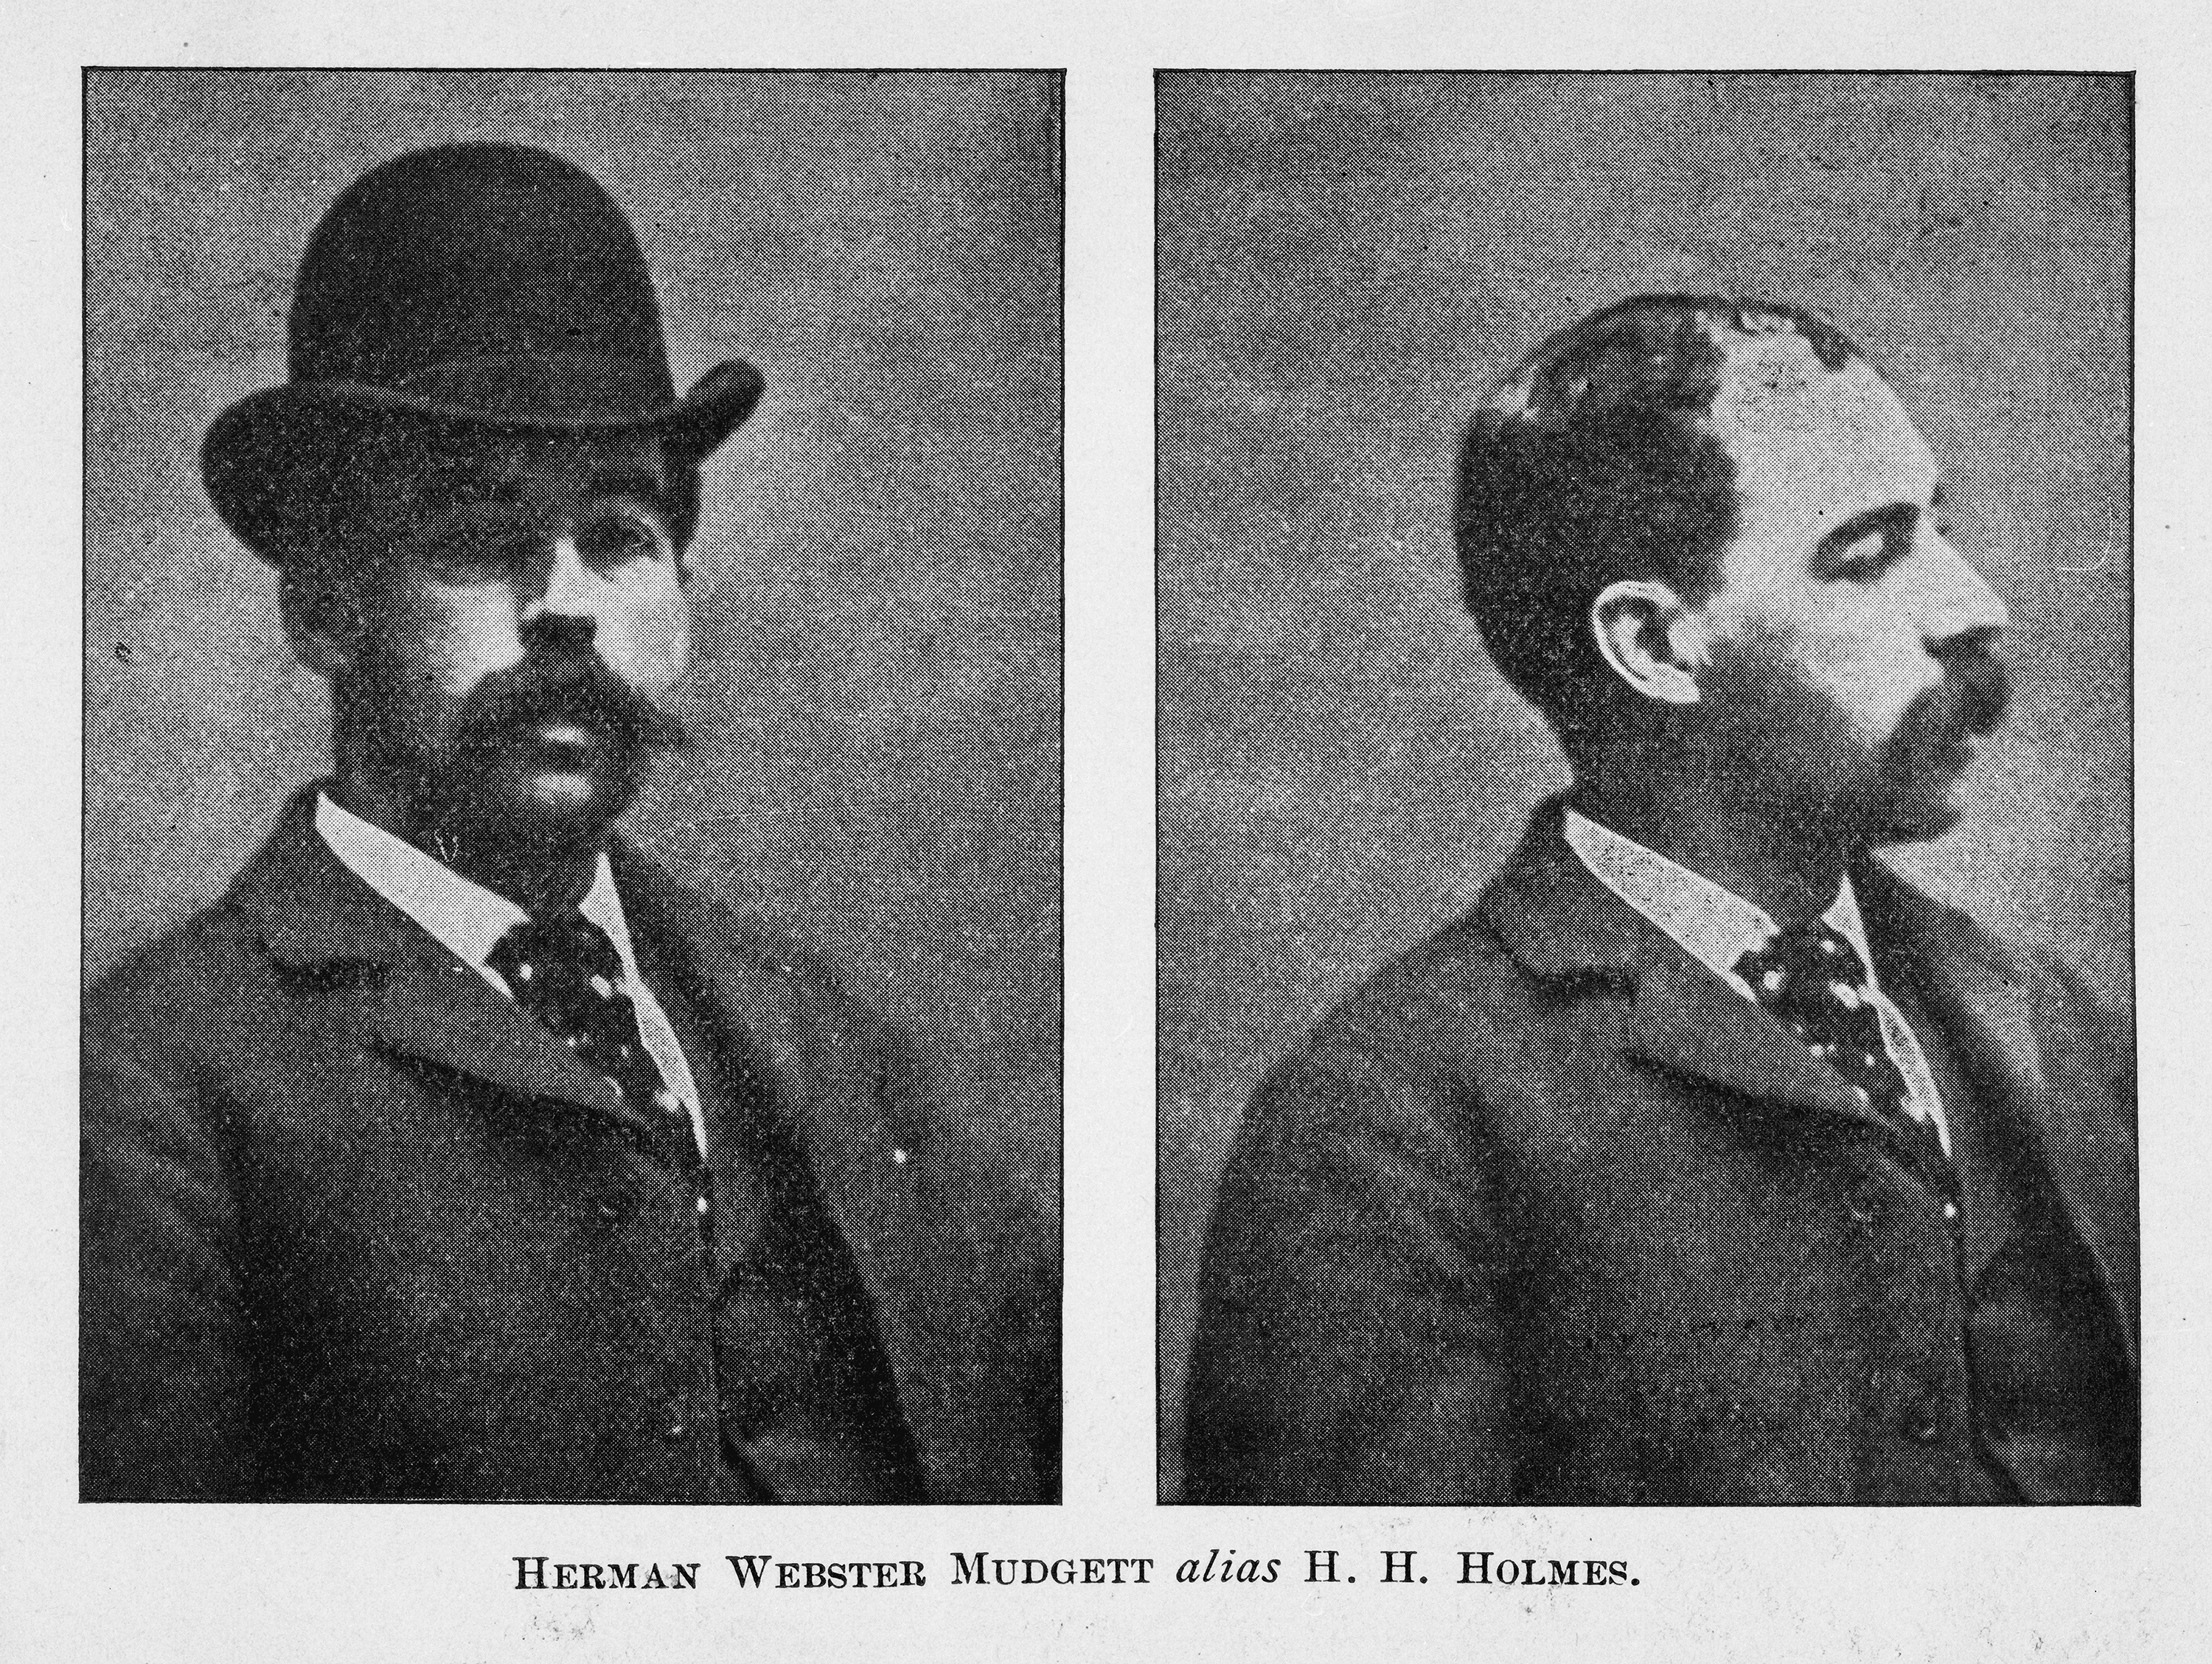 American Pharmacist And Convicted Serial Killer Herman Webster Mudgett Better Known By His Alias HH